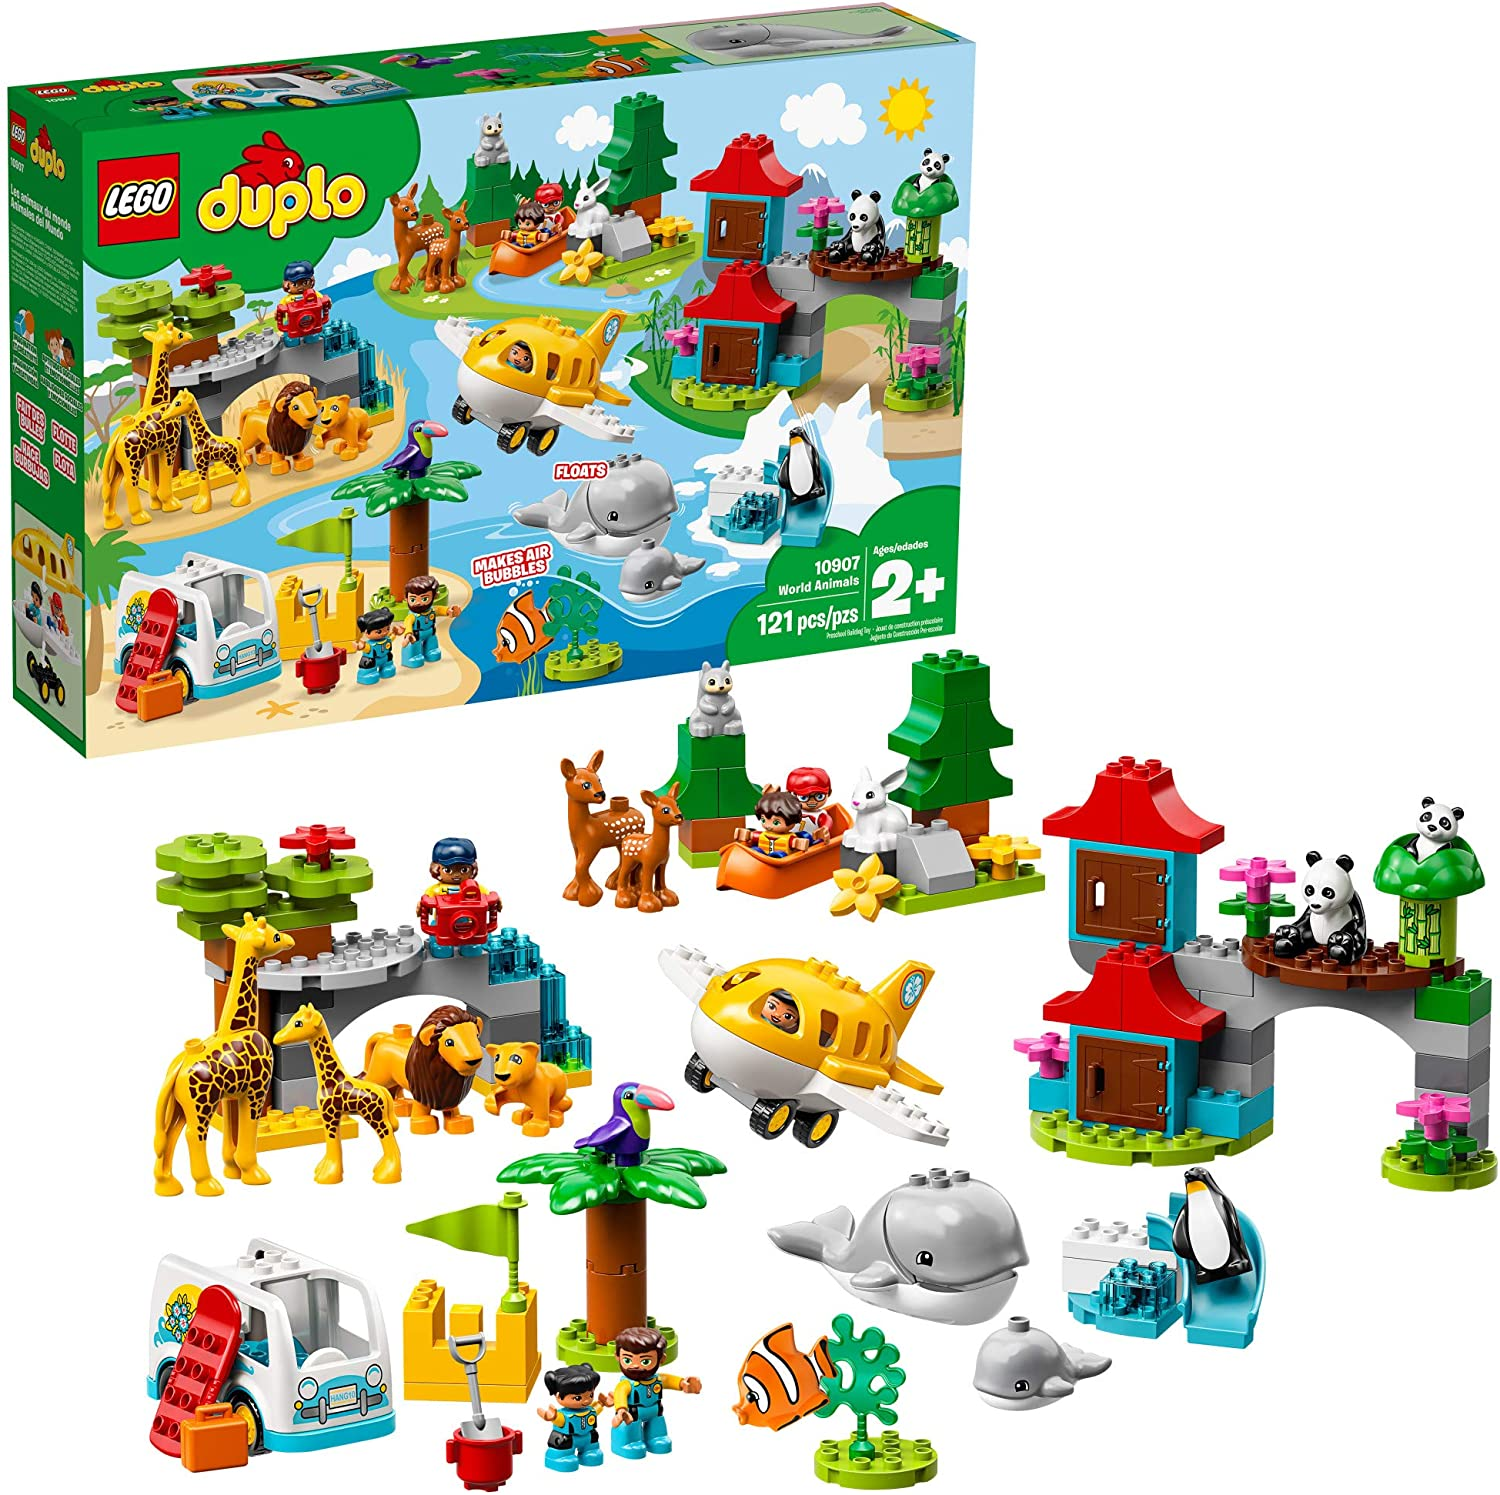 LEGO DUPLO Town World Animals 10907 Building Bricks, Toy Animal Set for Toddlers includes Whales, Lions, Pandas, Giraffes and other Wild Animals (121 Pieces)